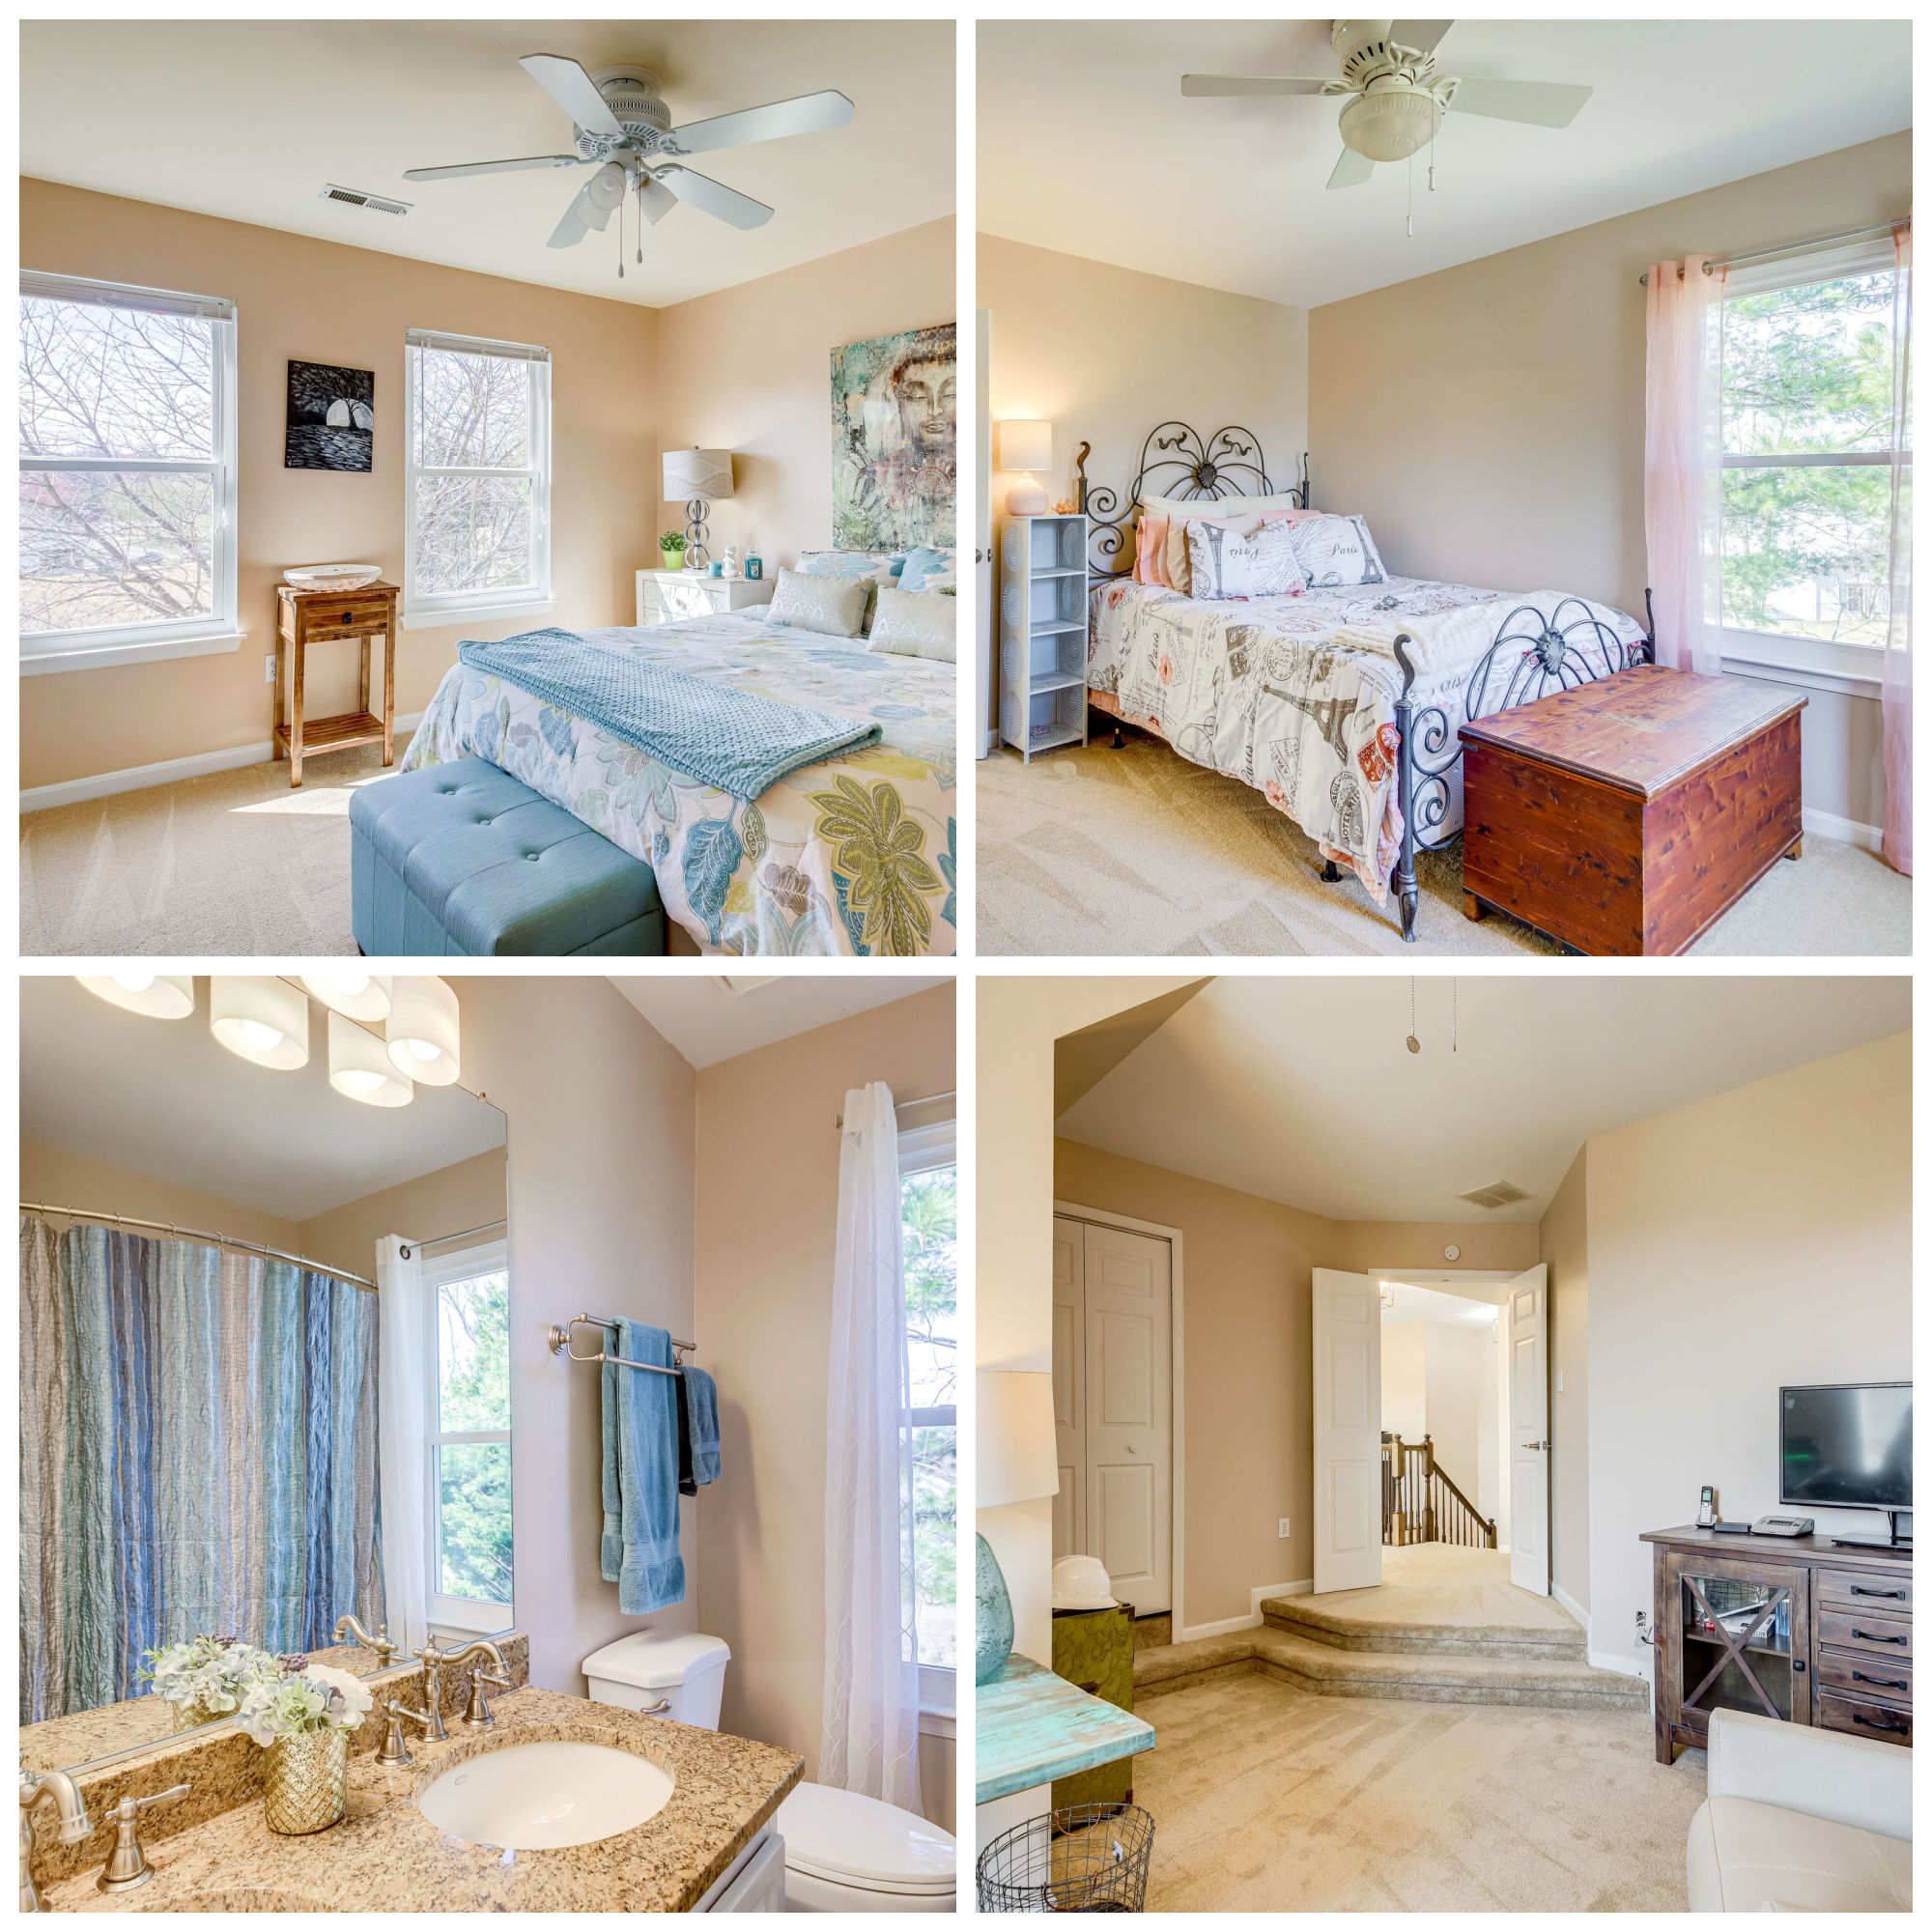 4241 Berry Rd, Gainesville, VA- Additional Bedrooms and Bath